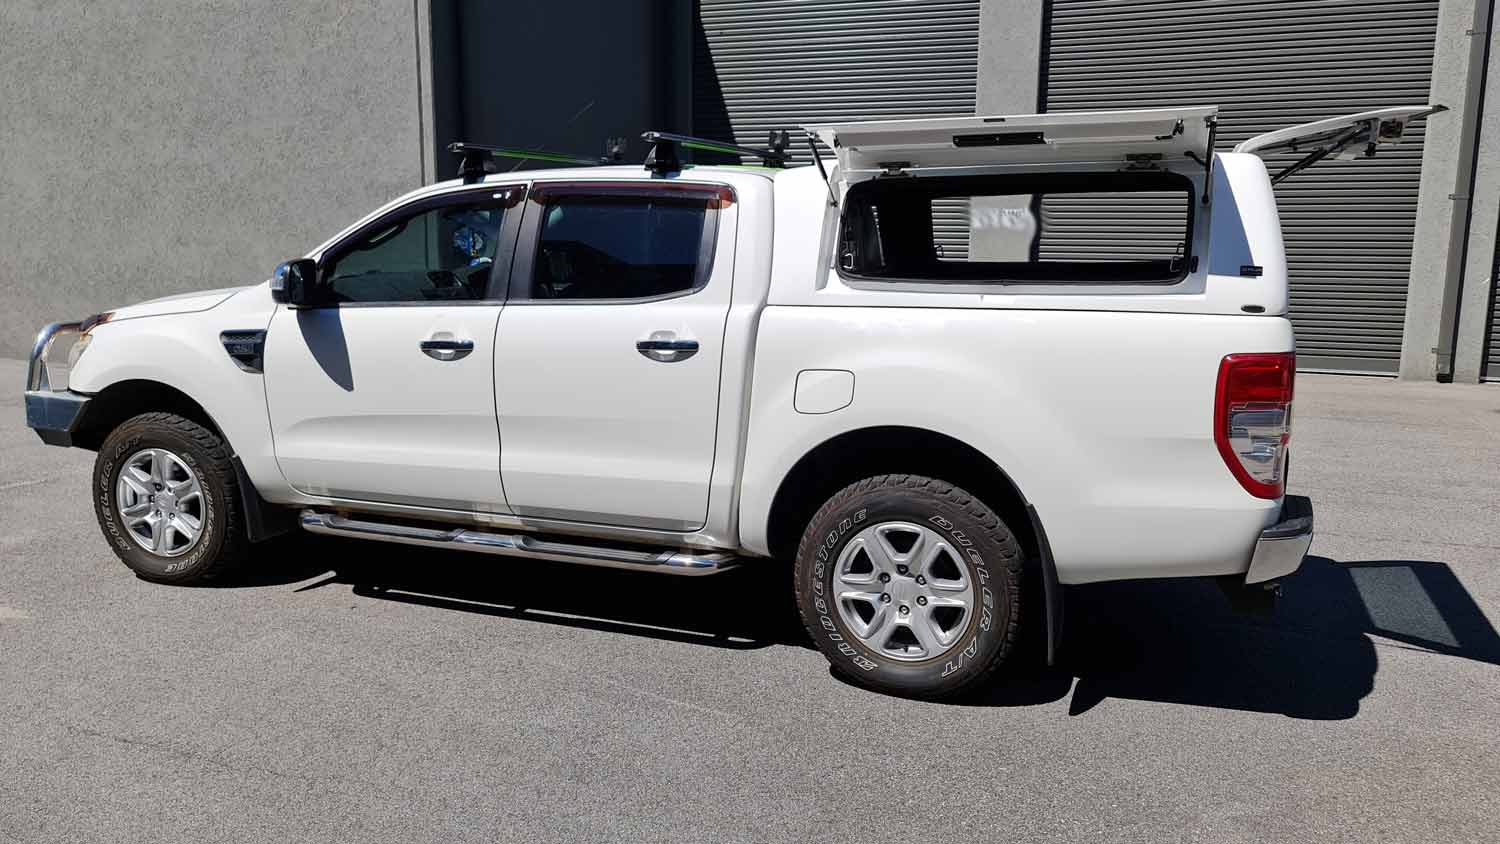 Force Pro Canopy on Ford Ranger 2016 - delux 4x4